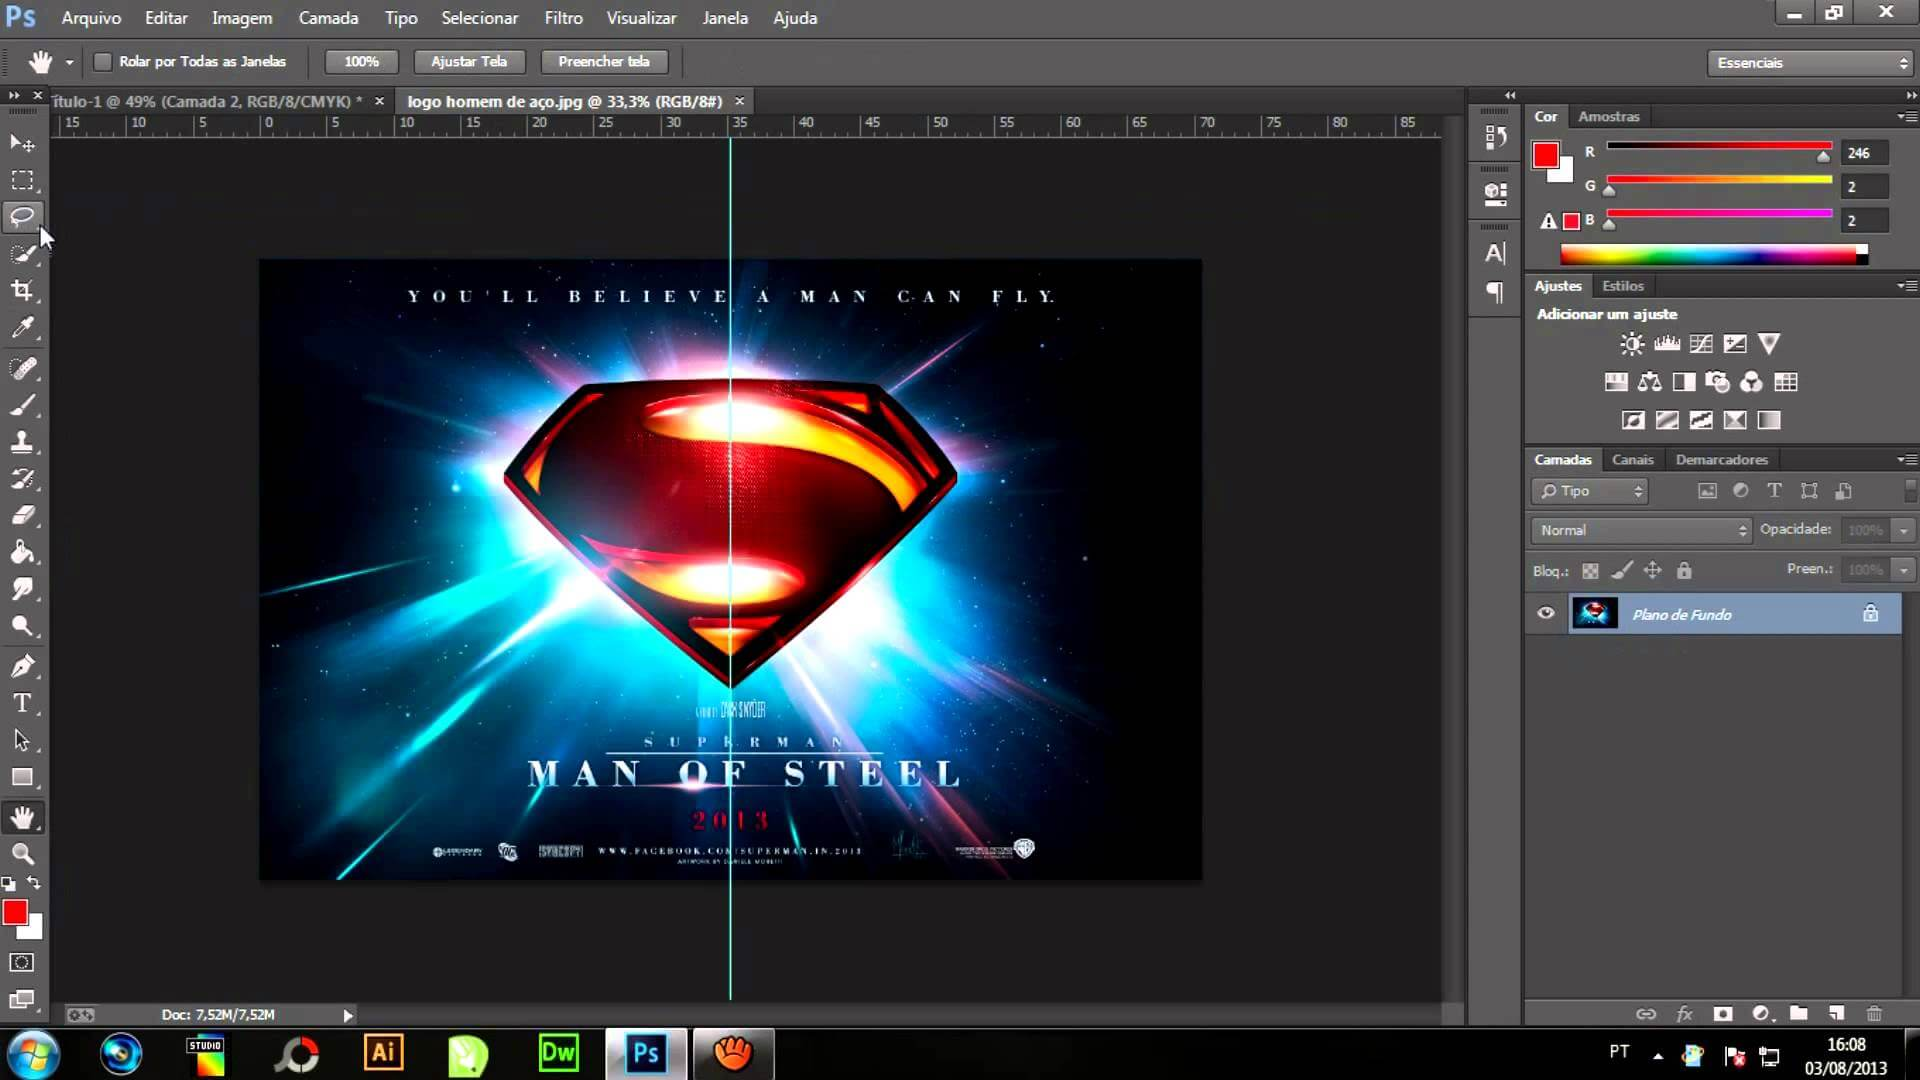 adobe photoshop cs7 free download full version for windows 7 32bit